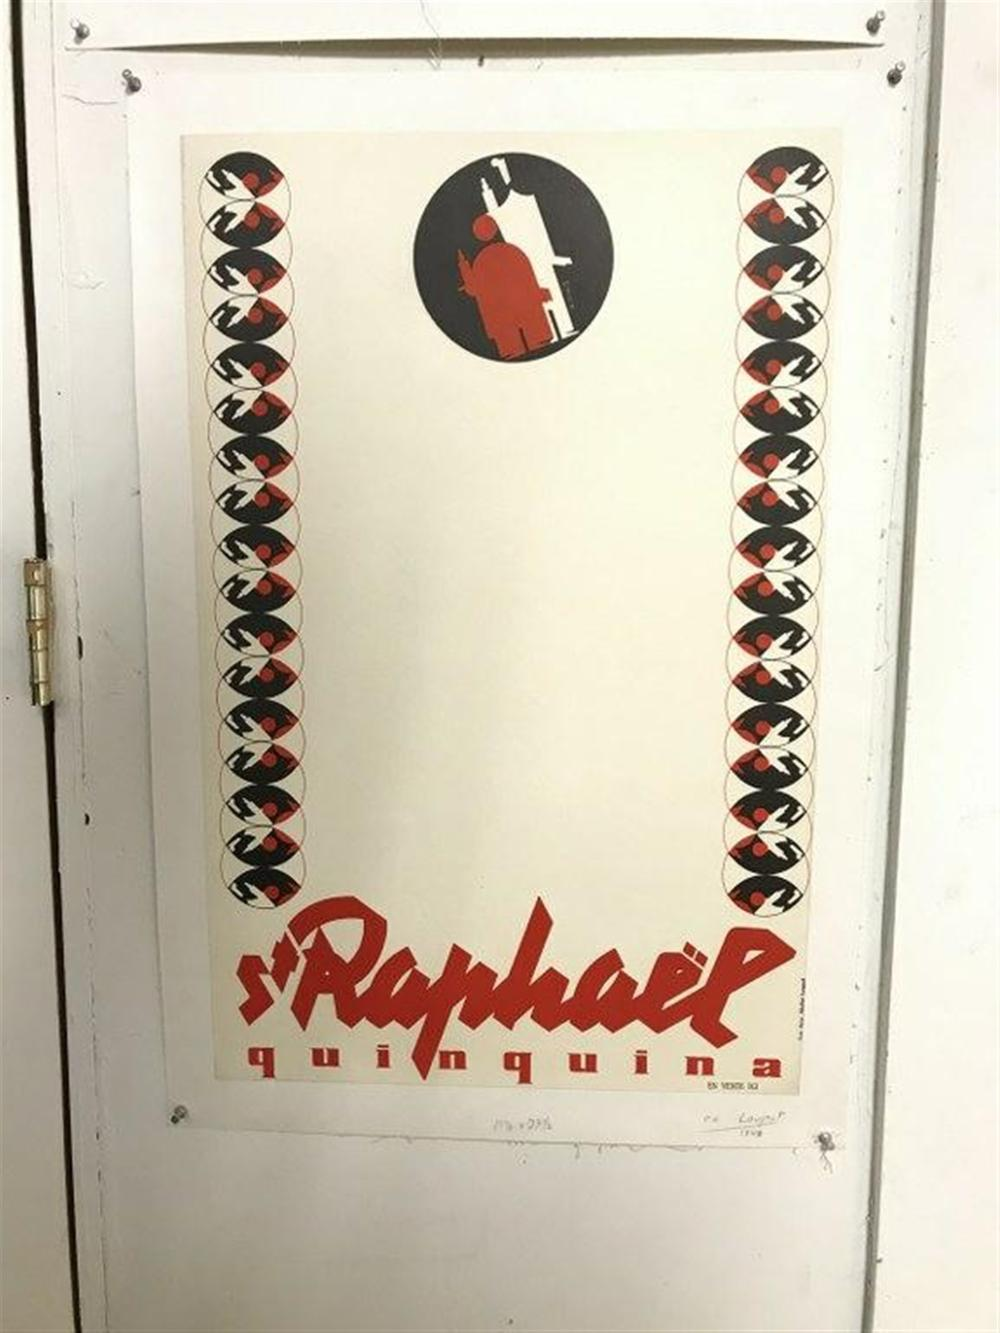 "POSTER  ST. RAPHAEL QUINQUINA 1942, LINEN BACKED, ARTIST IS LOUPOT, MEASURES 23 1/2"" X 15""."